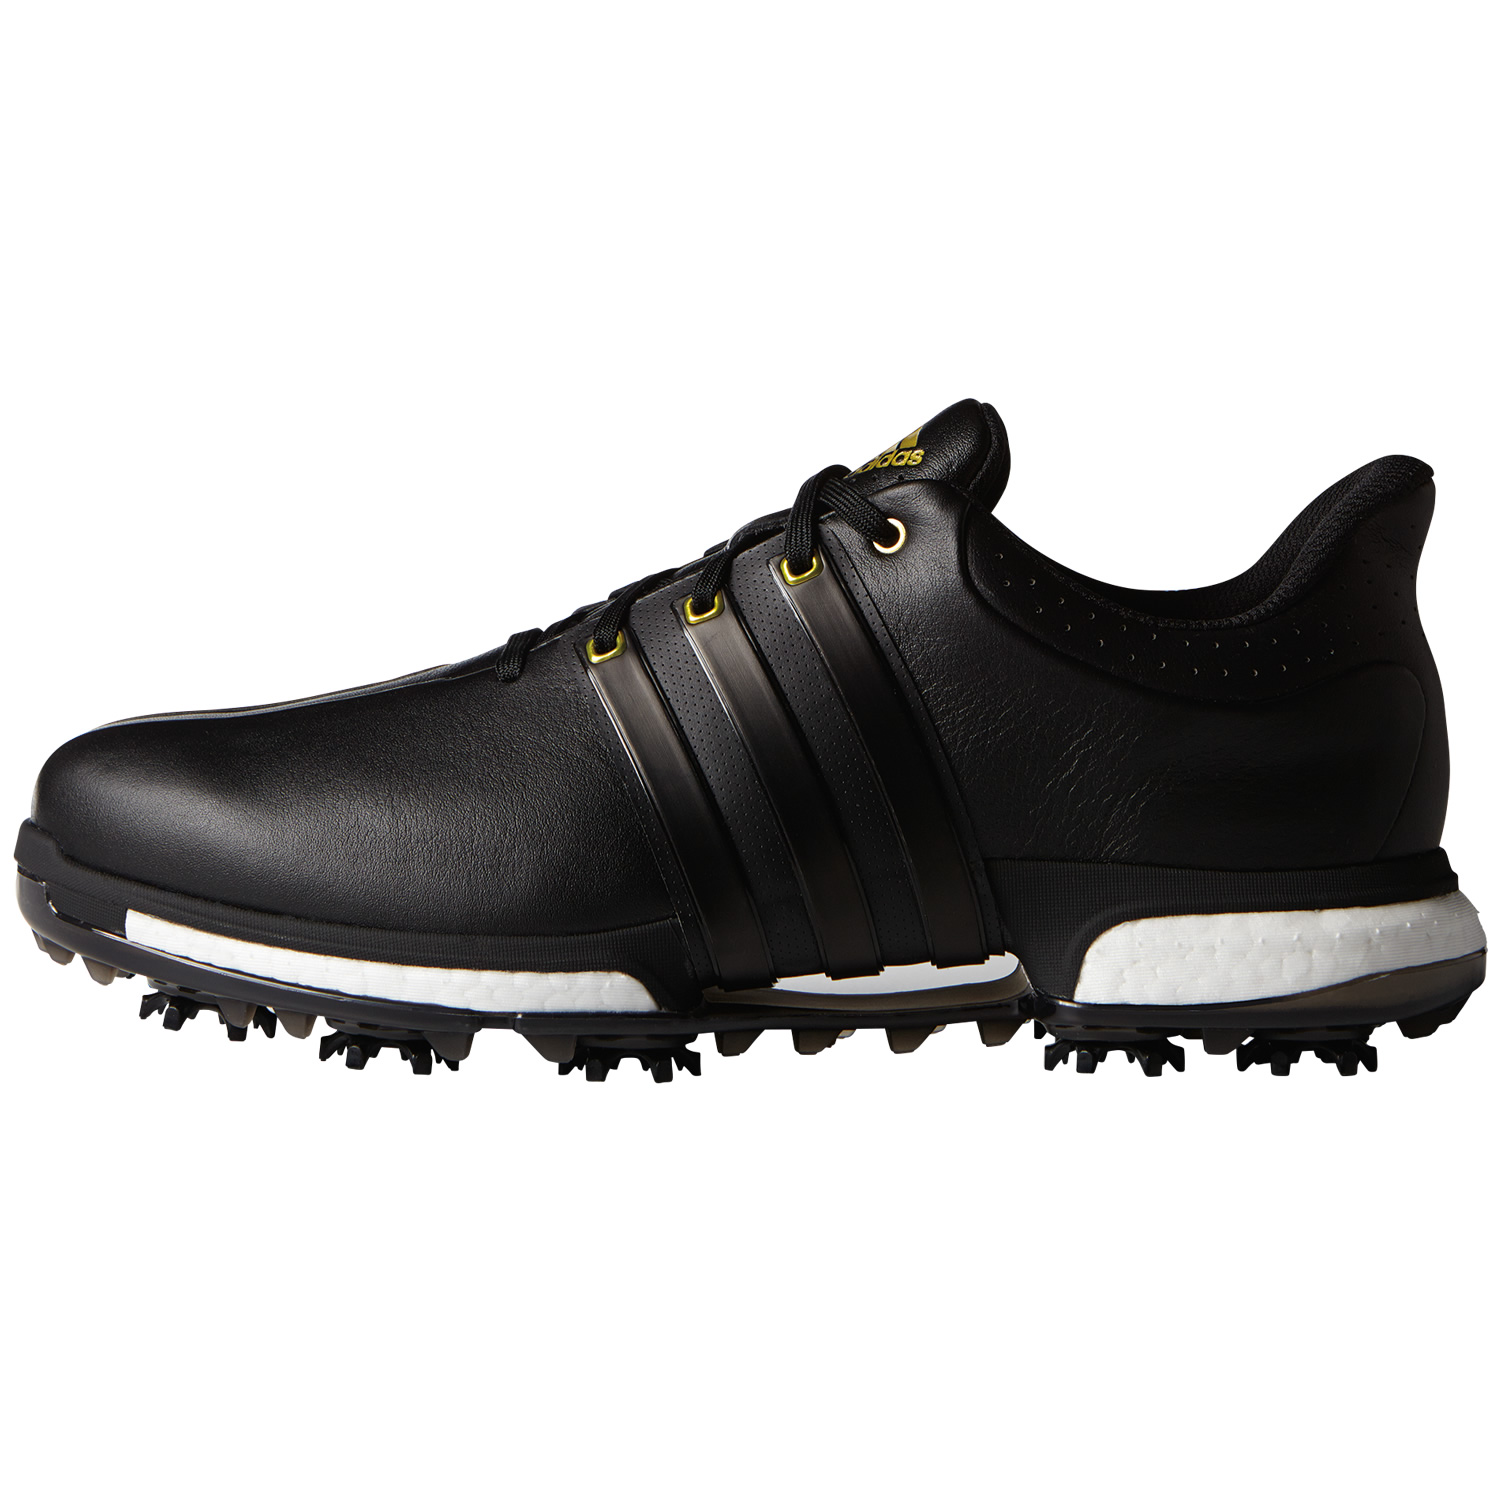 c9cc98ff5b669 Many people suffering from base suffering have seen a decrease in the  amount of pain following wearing orthopedic adidas® Women shoes for a few  days.